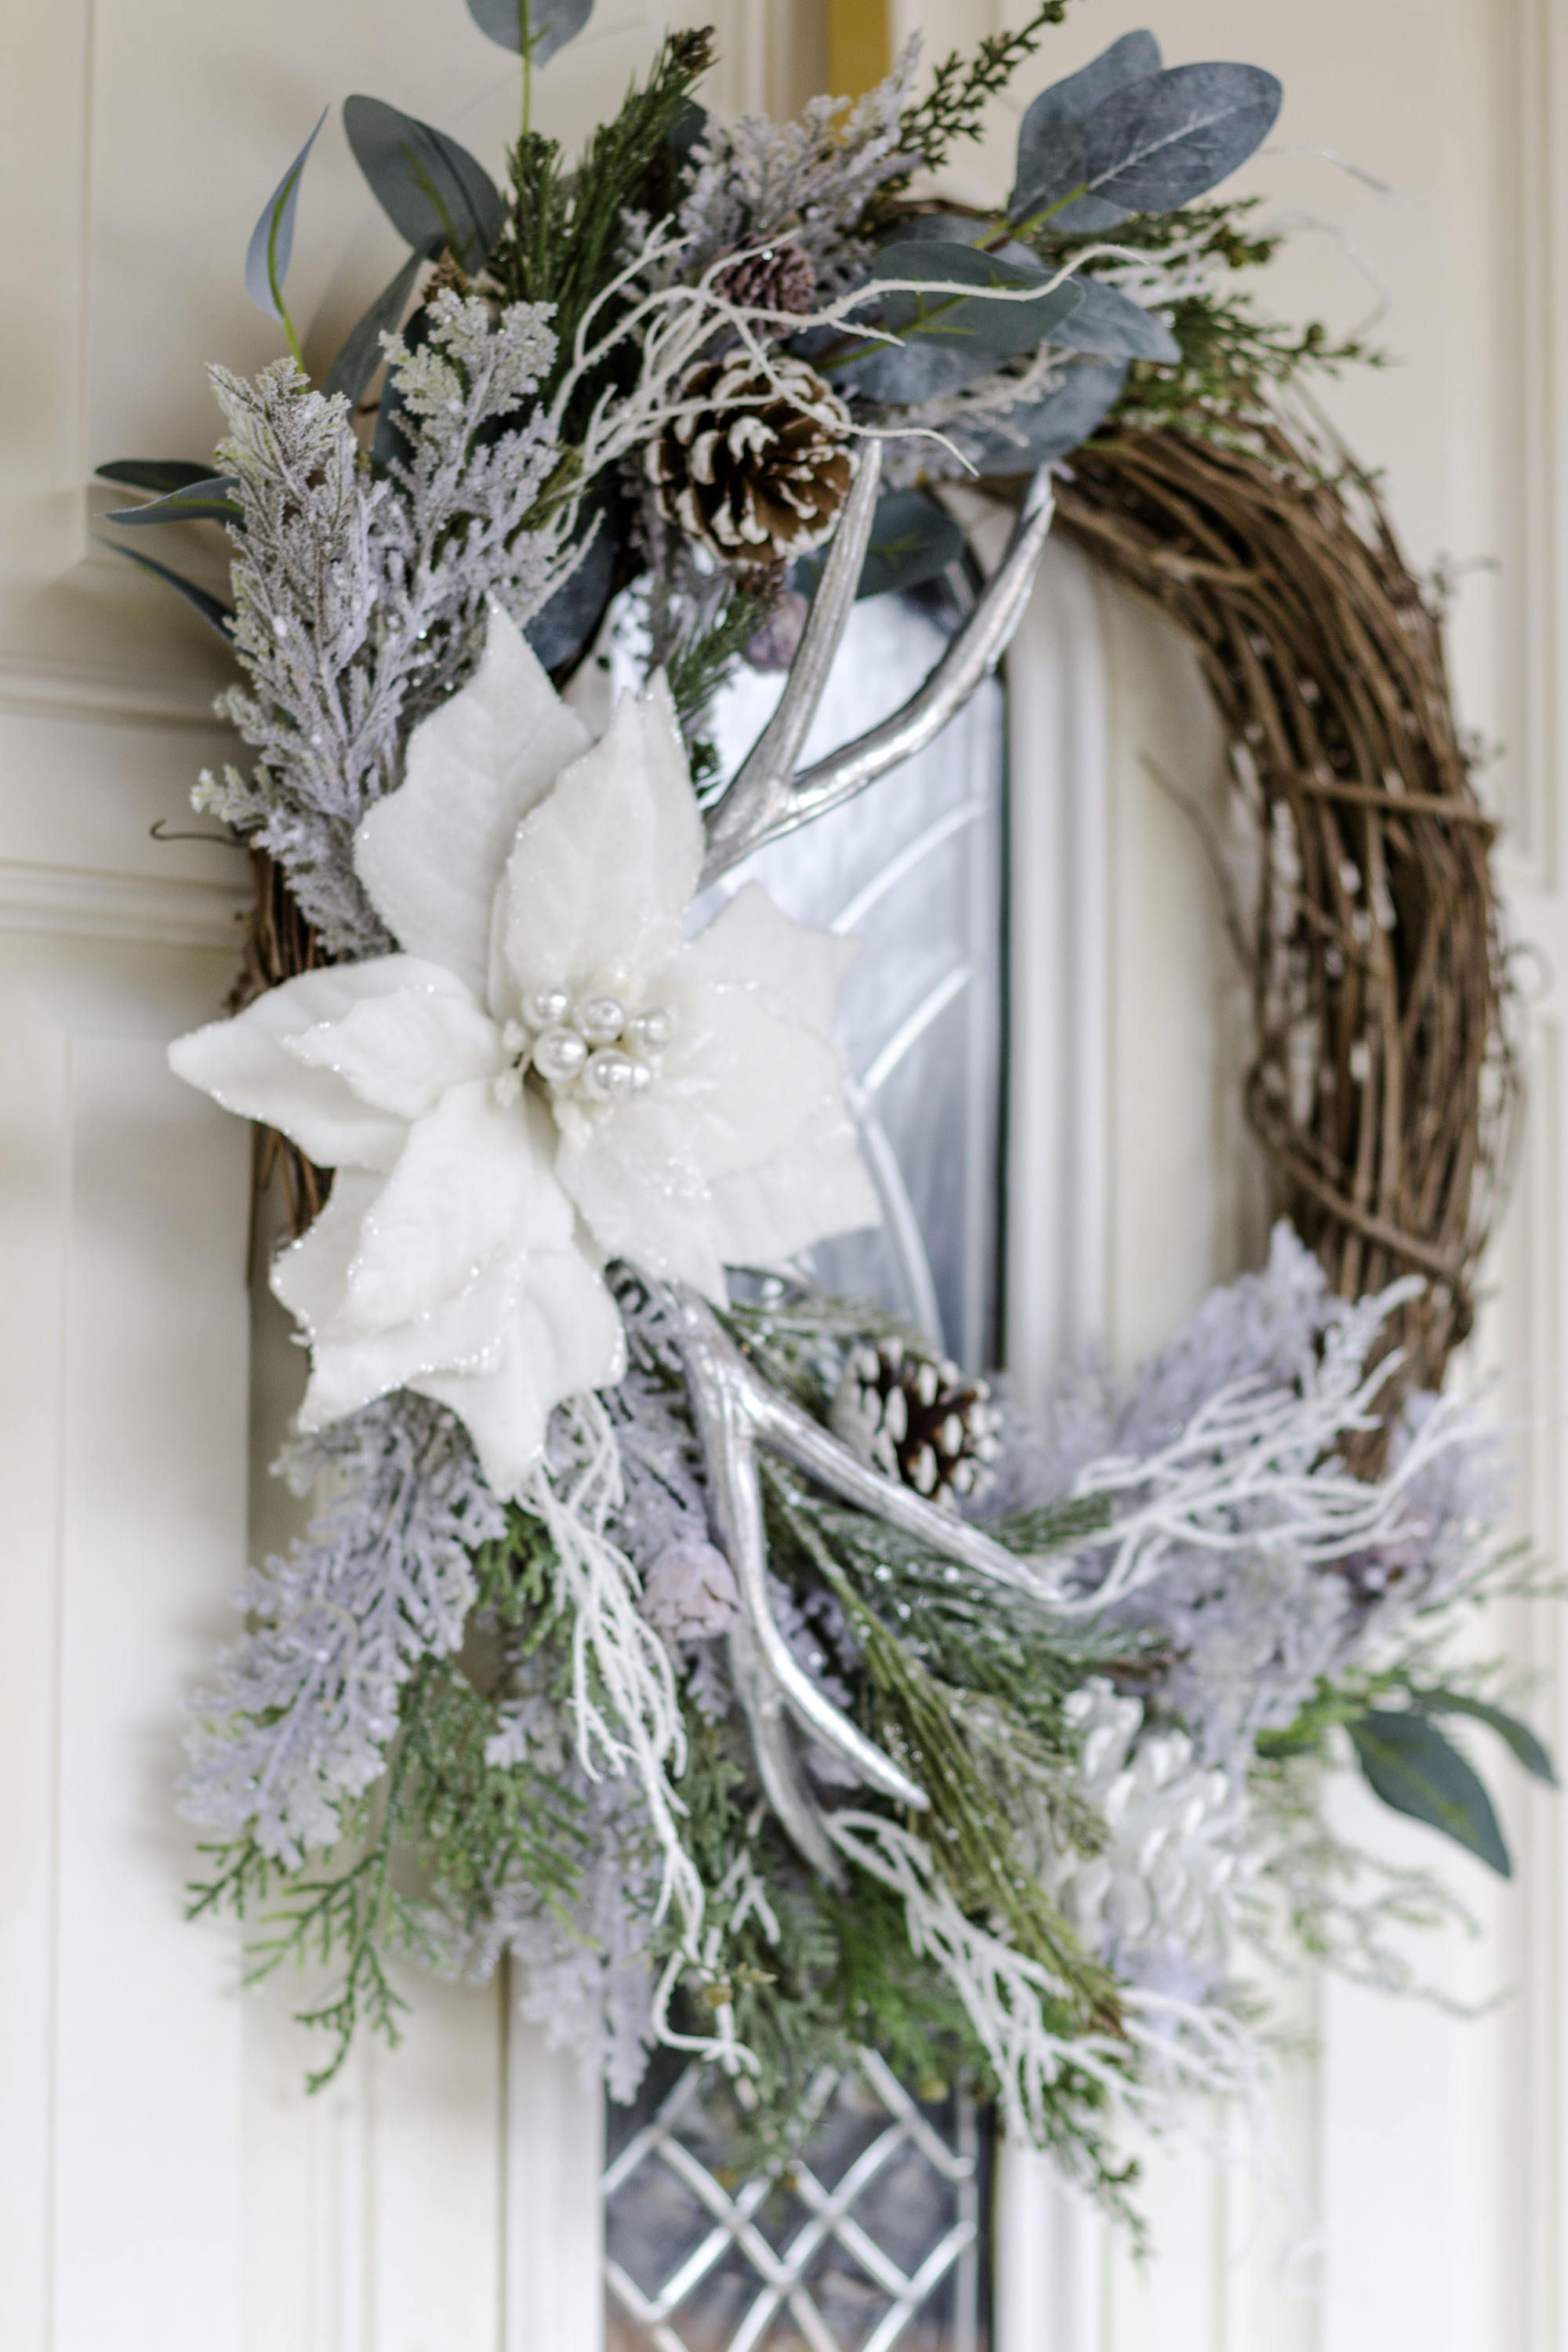 Christmas wreath rustic. Winter white